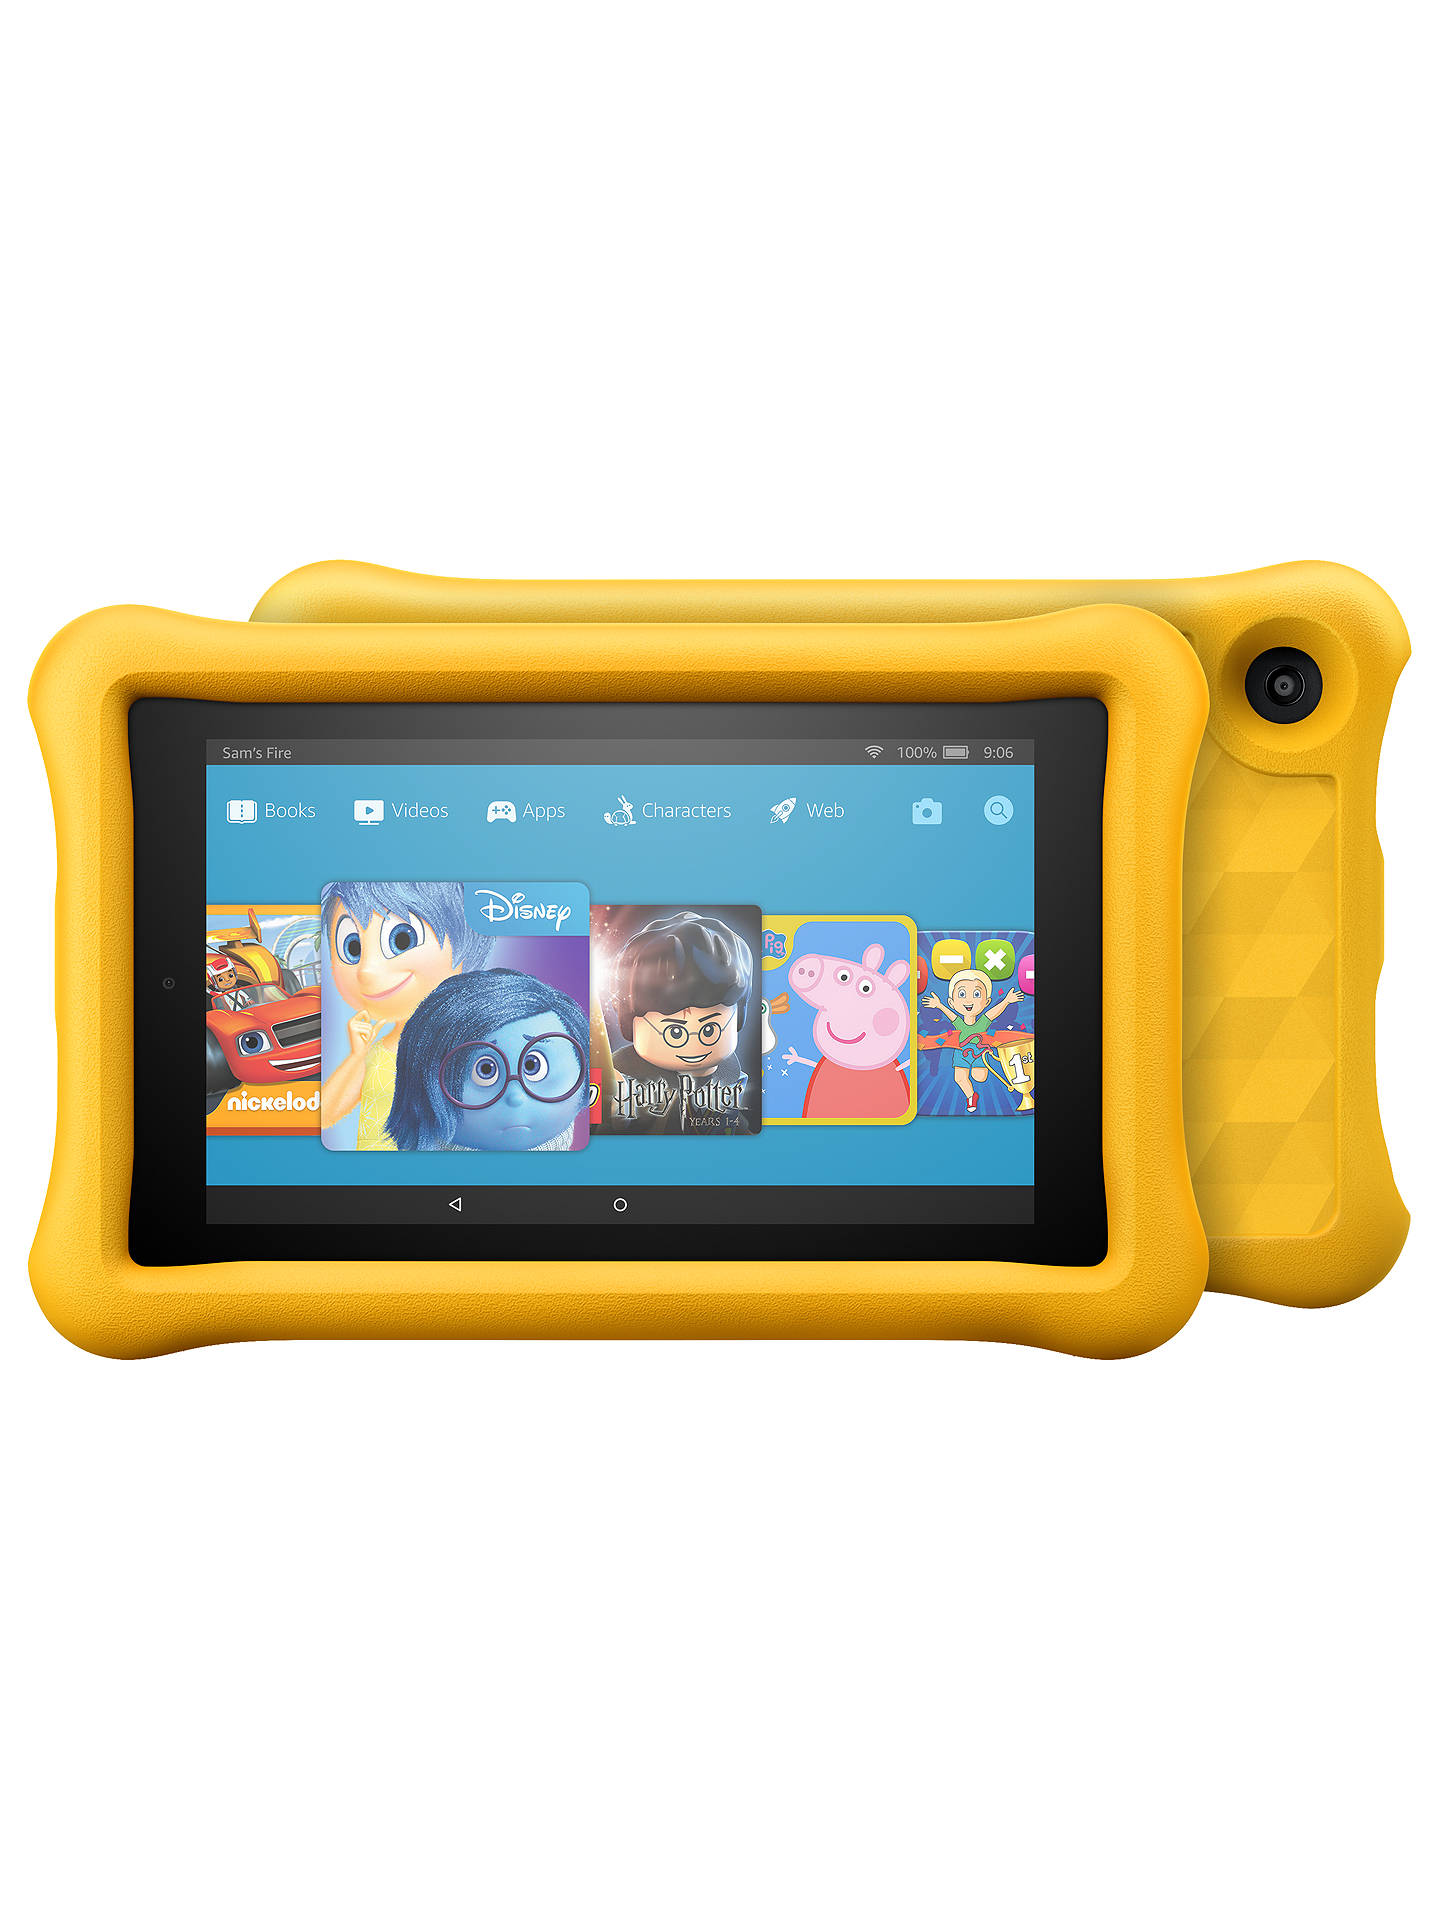 efabba3fa590f Amazon Fire 7 Kids Edition Tablet with Kid-Proof Case, Quad-core, Fire OS,  Wi-Fi, 16GB, 7